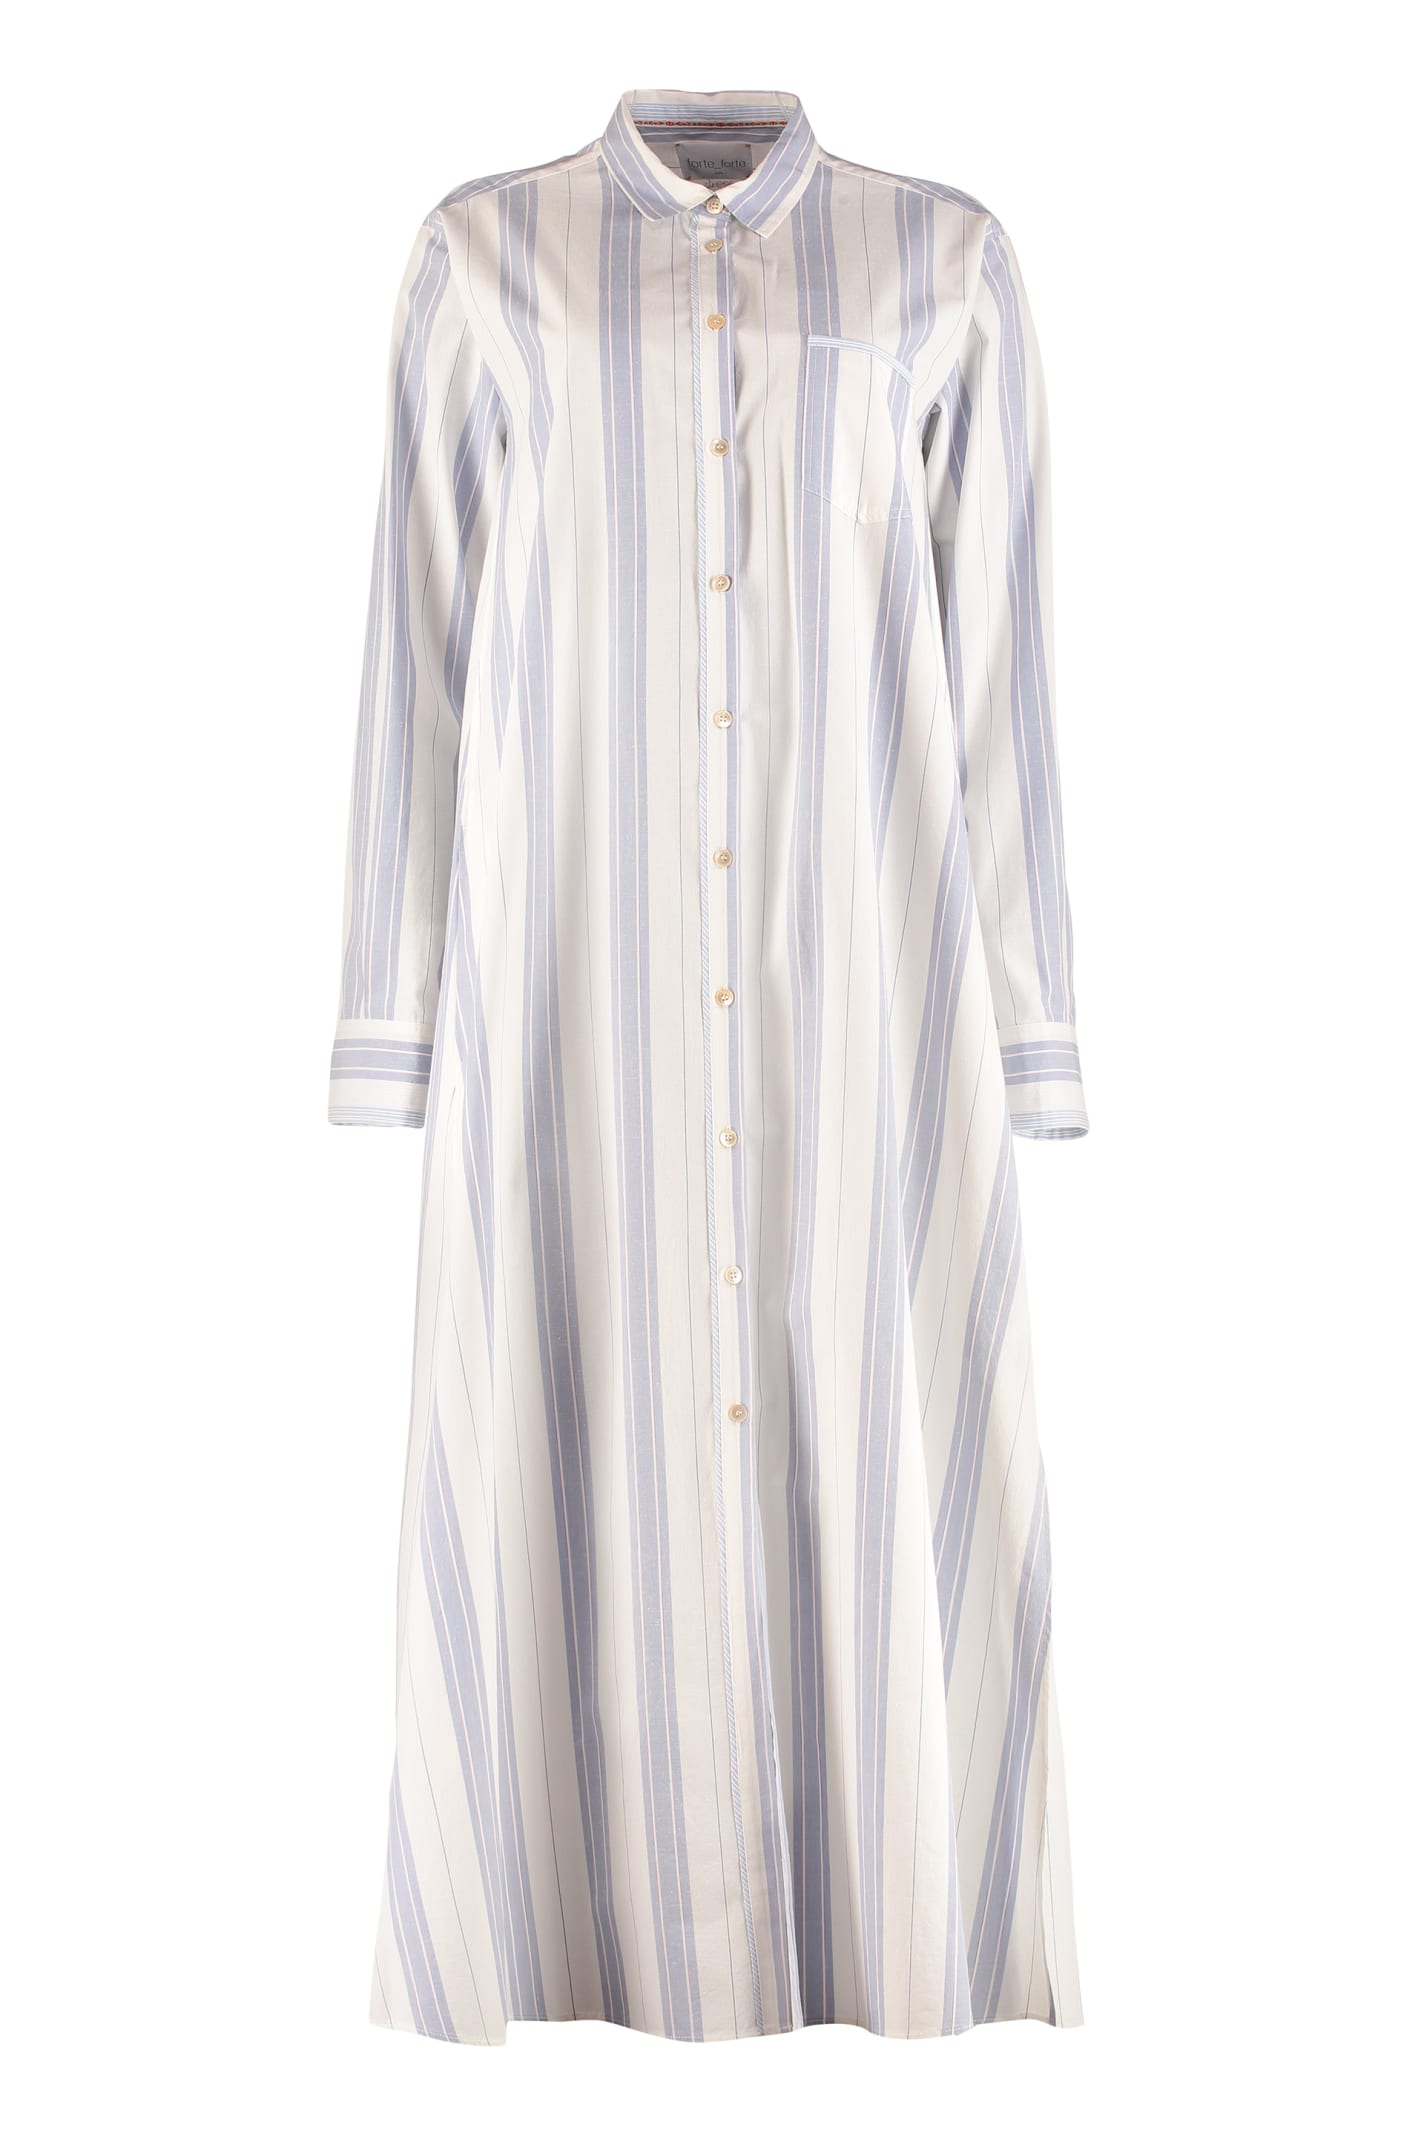 Buy Forte Forte Printed Shirtdress online, shop Forte Forte with free shipping